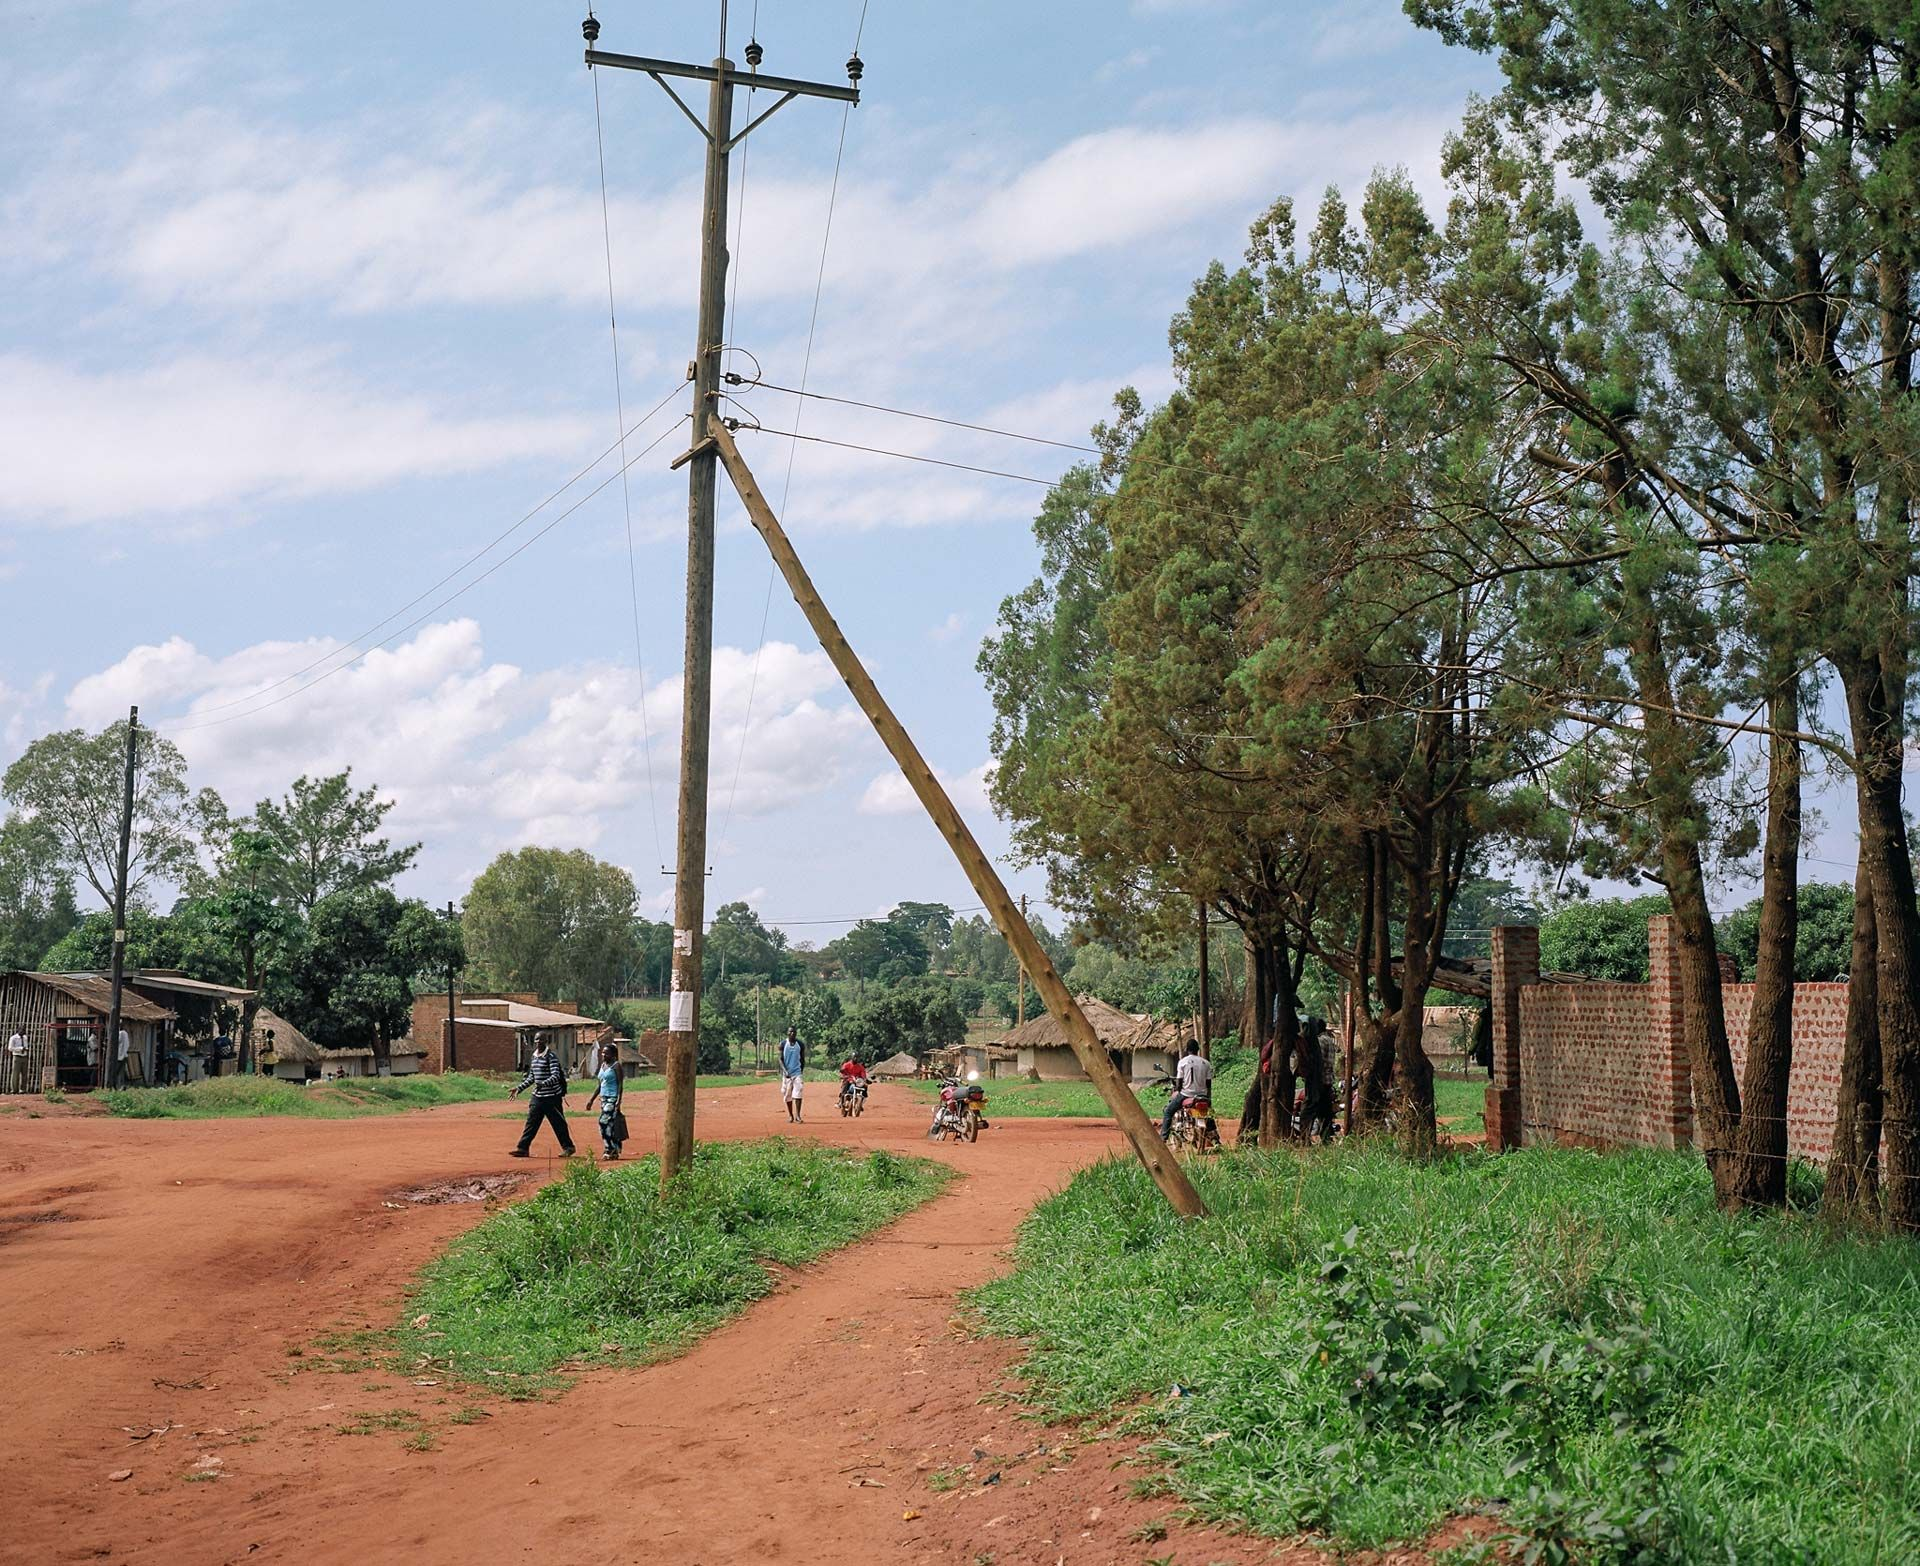 dirt roads in village by Alexi Hobbs in Uganda for Football for Good with Sportsnet